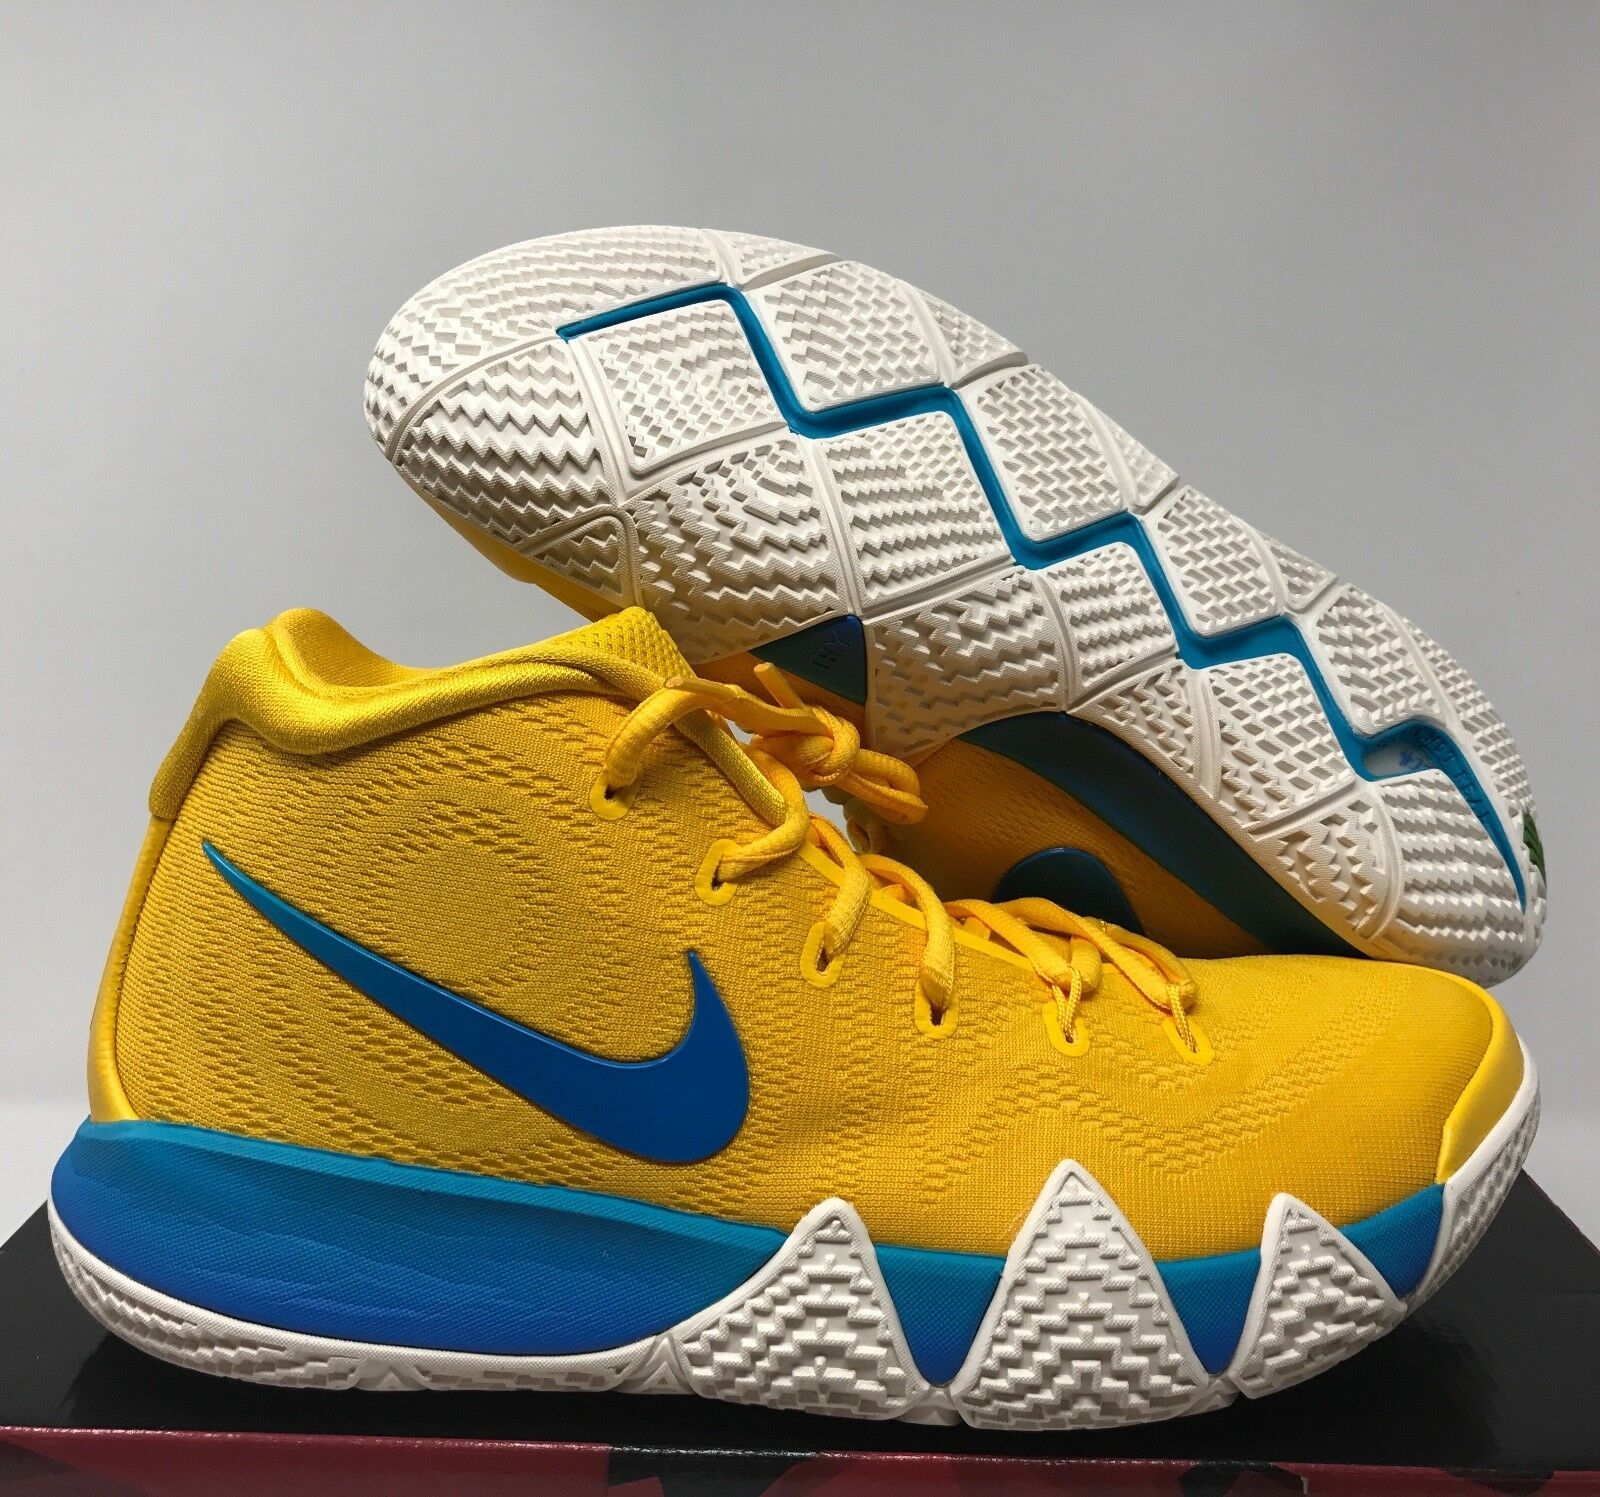 NIKE KYRIE 4 KIX CEREAL PACK yellow MULTI-COLOR SZ 11